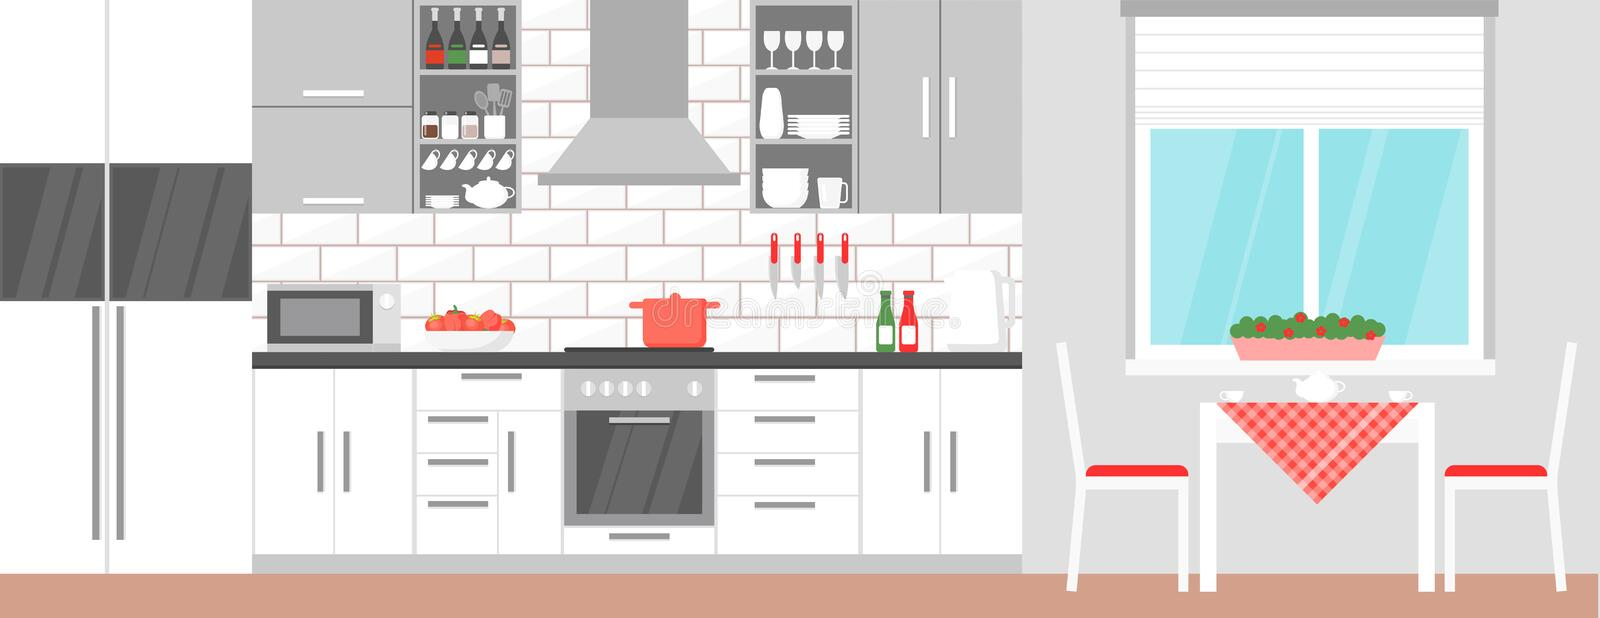 Vector illustration of modern kitchen interior with dining table and stuff for cooking food, stove, cupboard, dishes and vector illustration